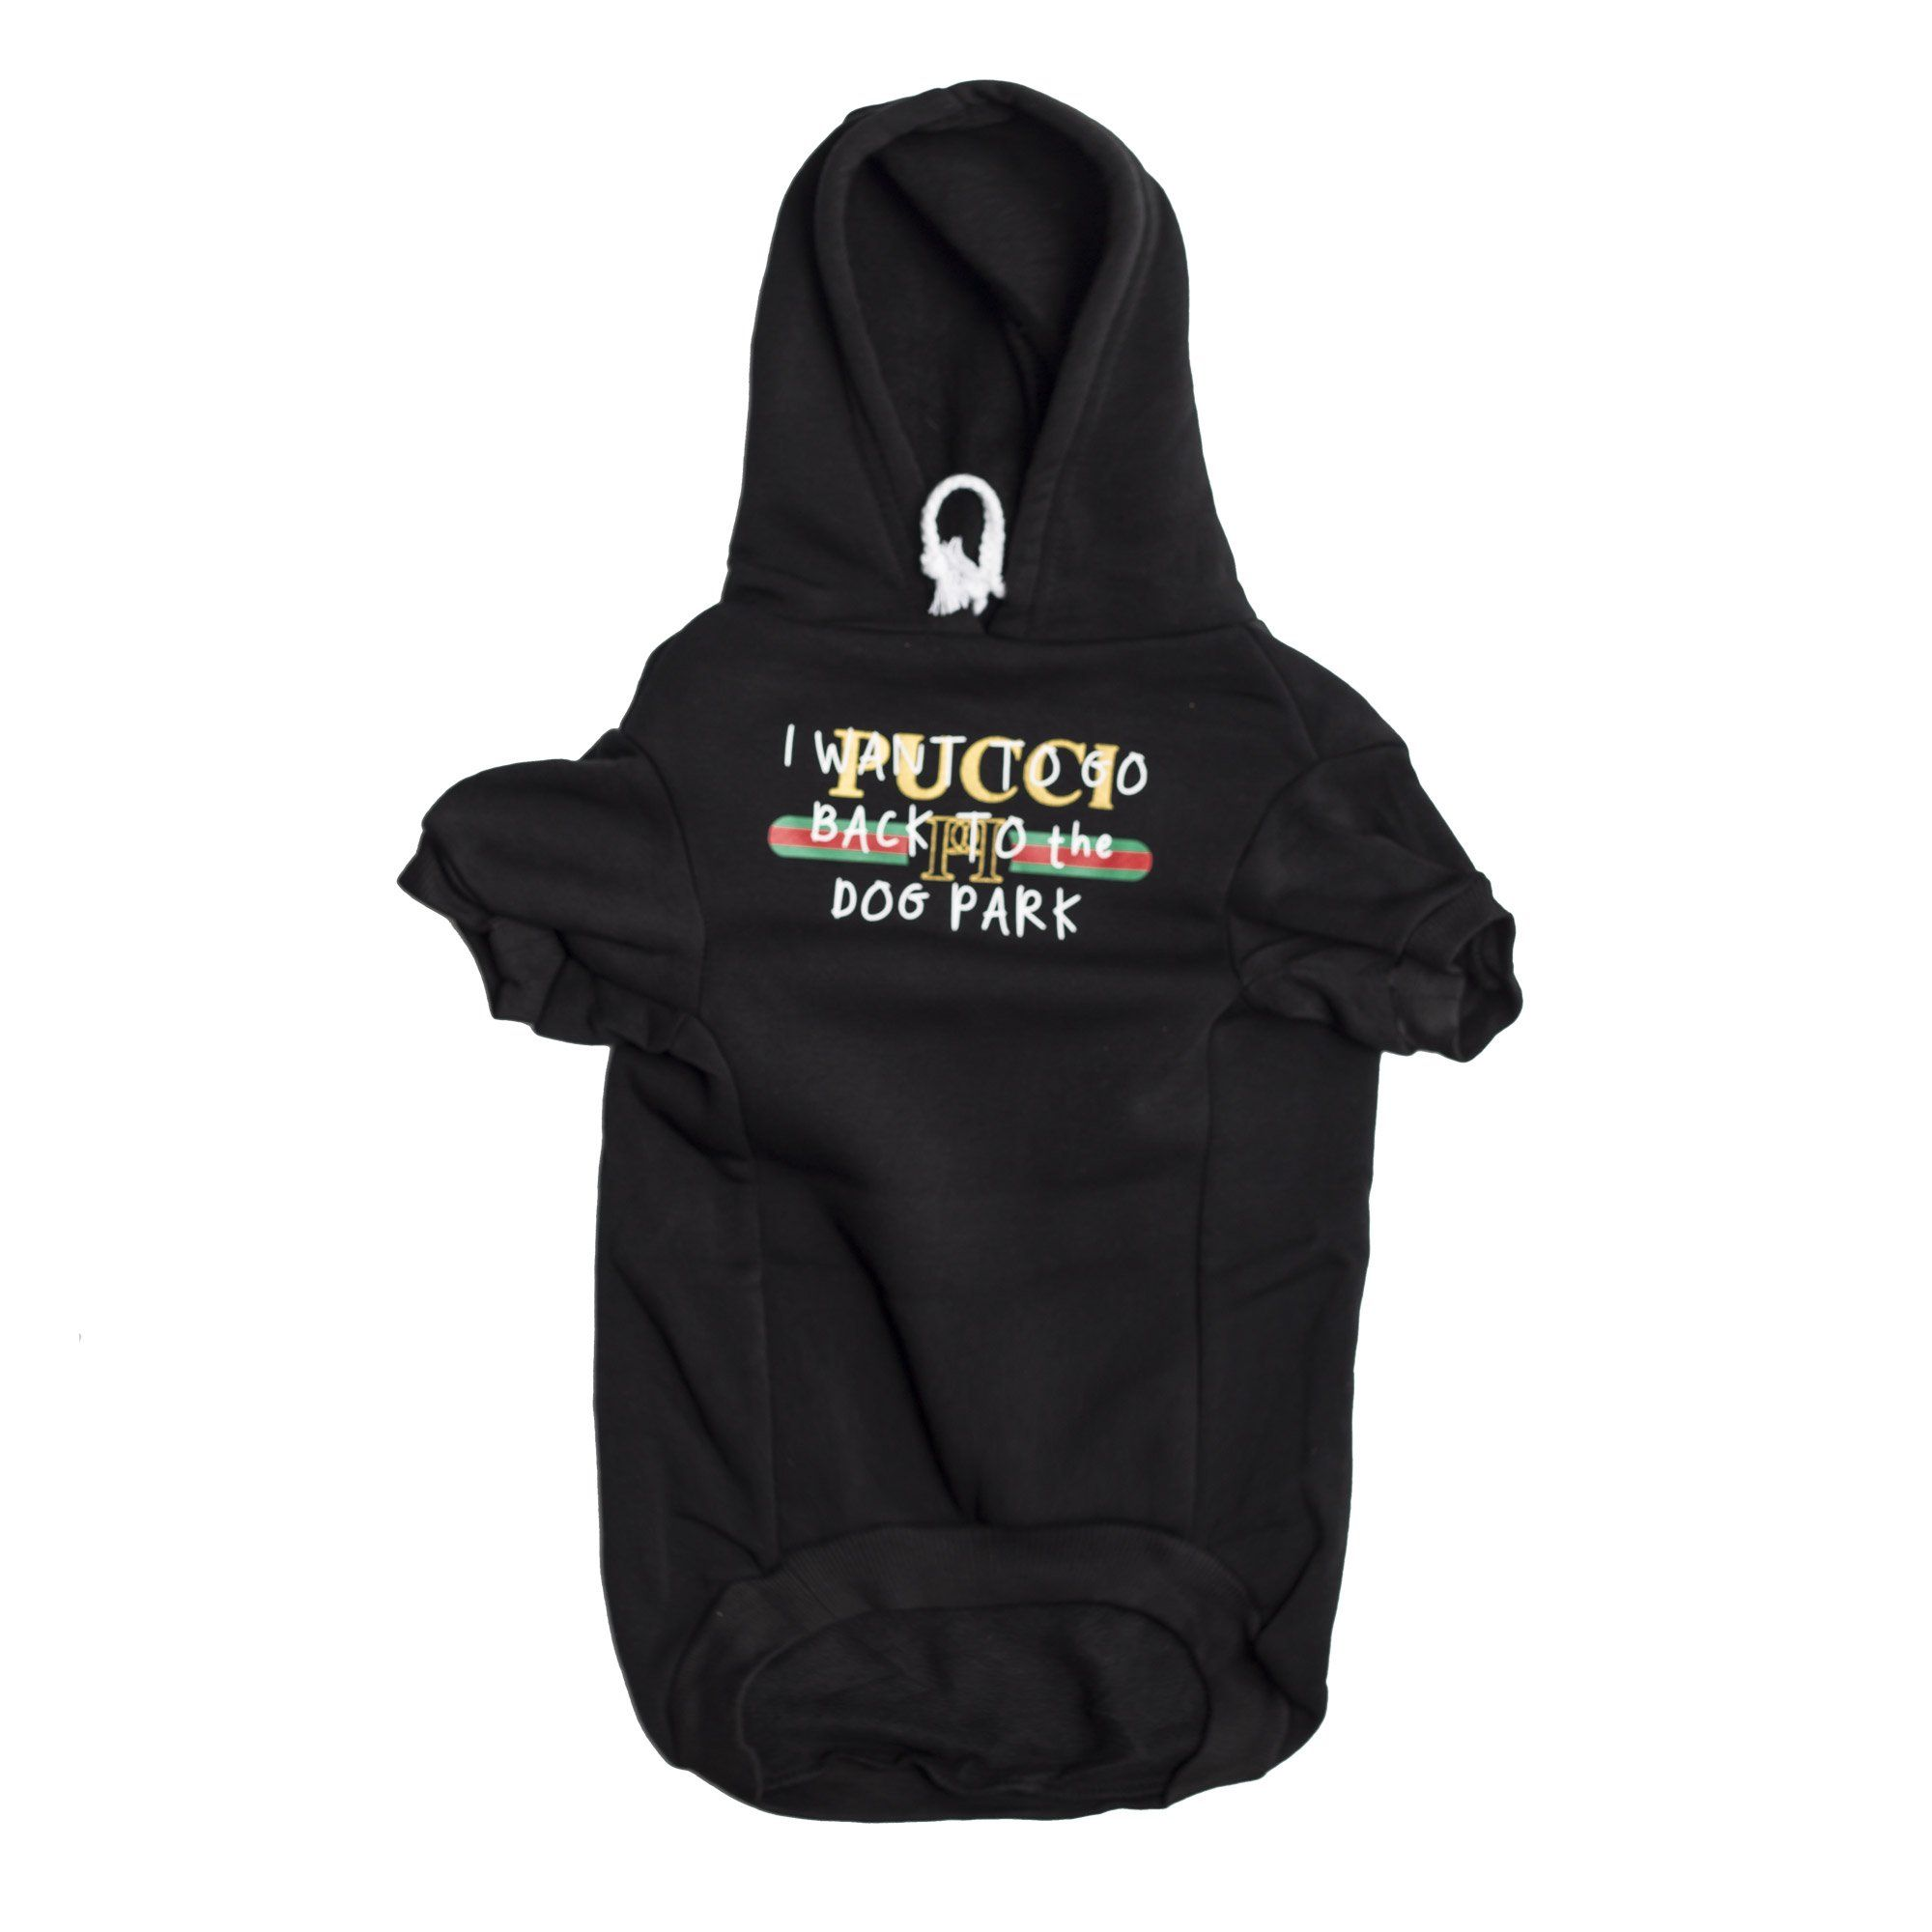 f2690b23e Pucci Dog Park Hoodie | Dog Clothing | Fresh Pawz | Dog Clothing ...